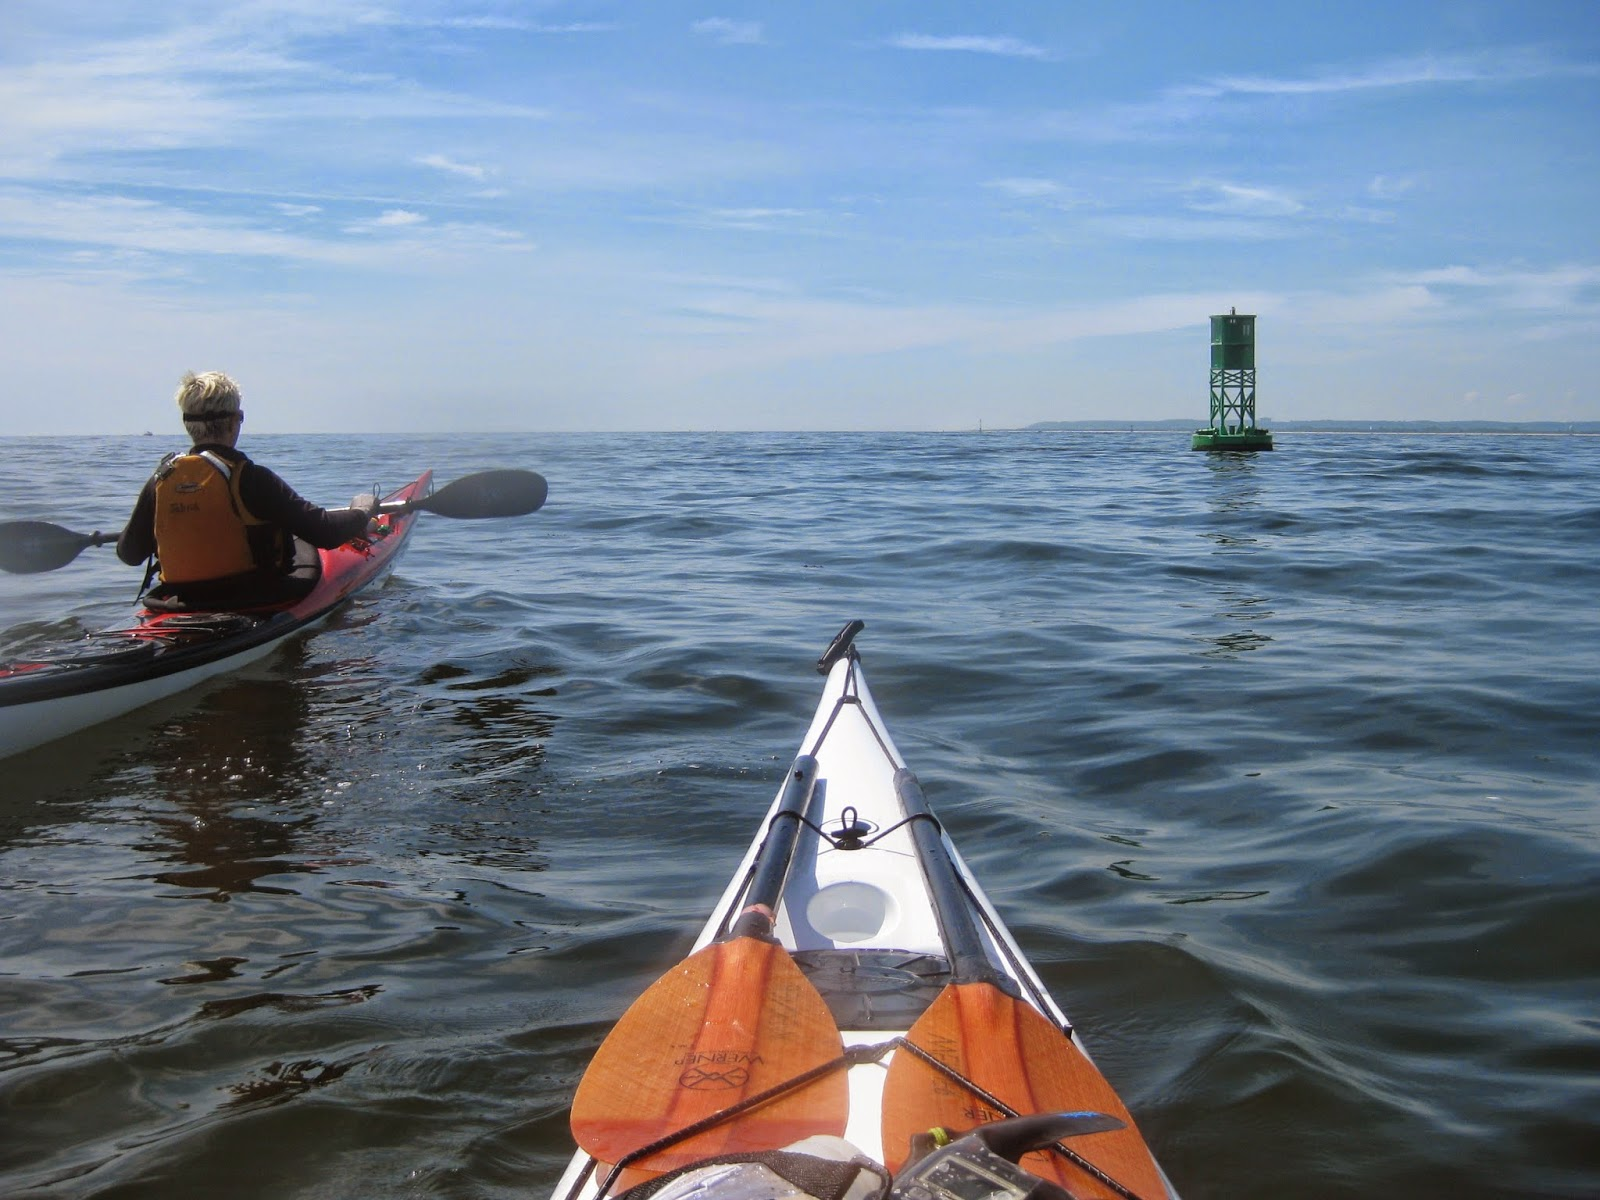 Approaching a Buoy.